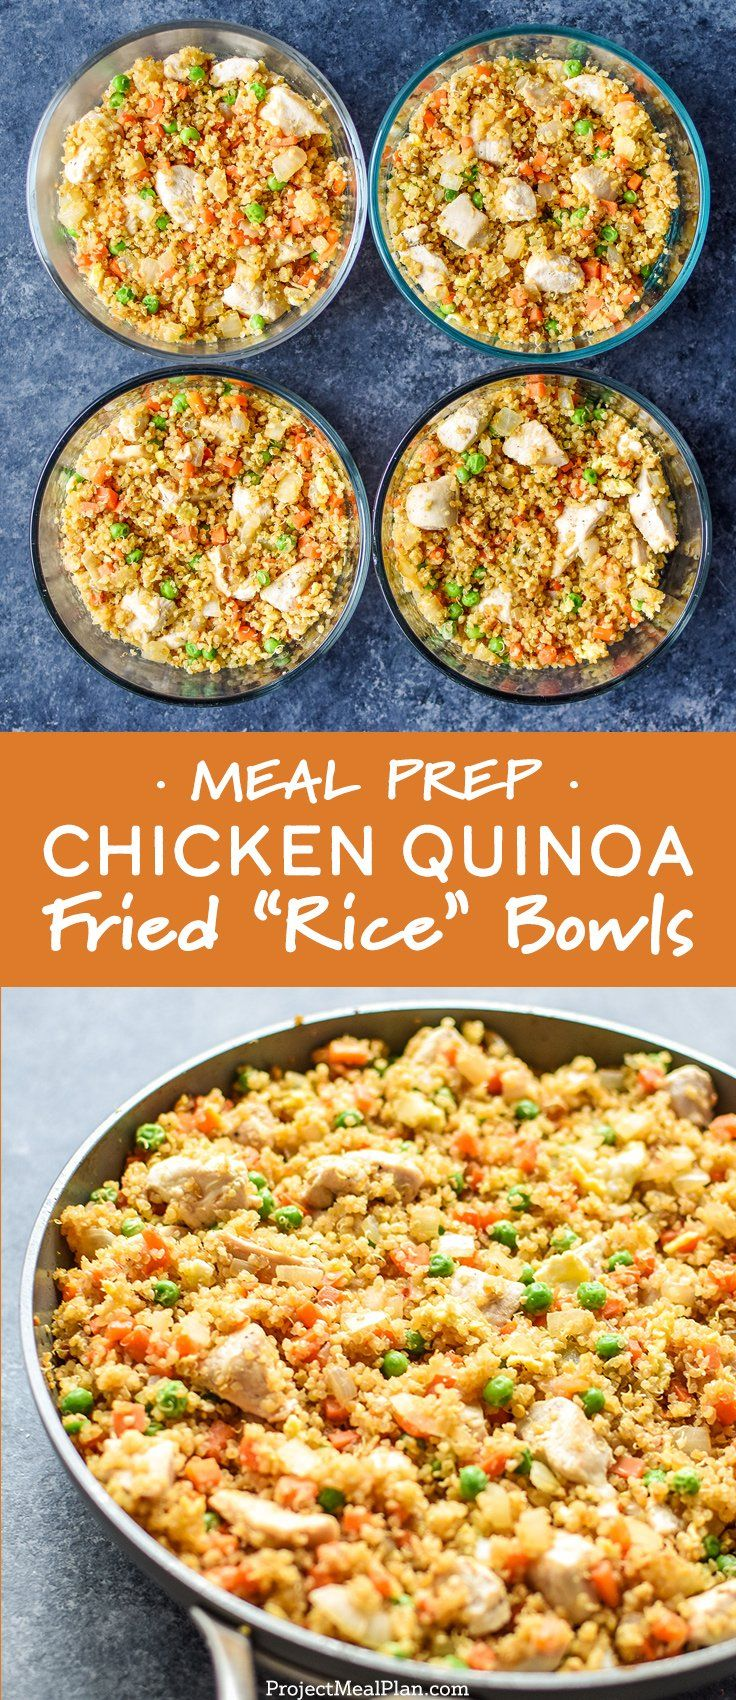 """A healthier fried """"rice"""" that's perfect for meal prep! Fried quinoa in place of rice with veggies and chunky chicken breast - you won't even know what's missing in these Meal Prep Chicken Quinoa Fried """"Rice"""" Bowls! - ProjectMealPlan.com #mealprep #quinoafriedrice #easymealprep #mealprepideas"""